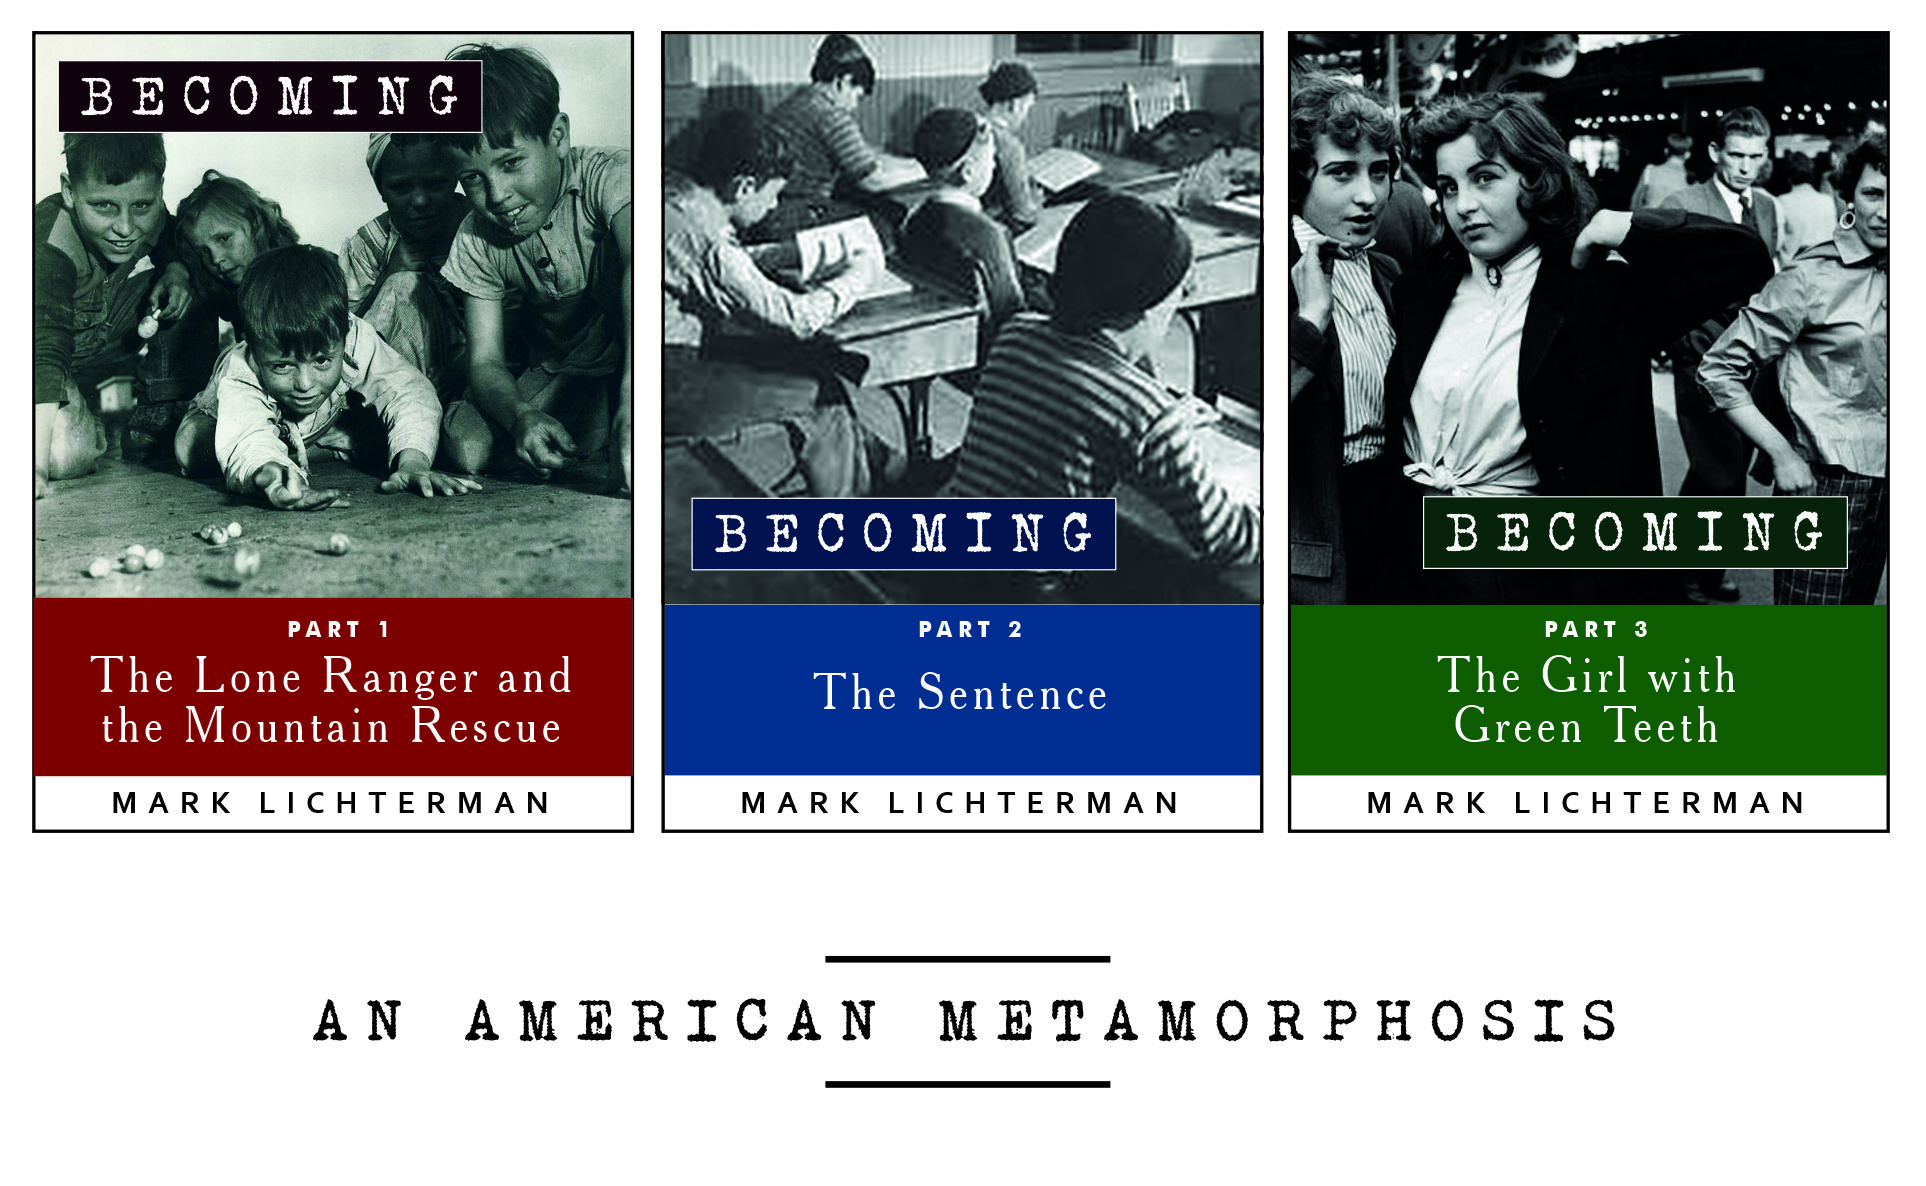 'Becoming' is an epic 26 part series for Kindle.   It is the story of an American passage from youth to manhood, set in the Chicago of the 1940s, 50s, and 60s.  ADVISORY: As 'Becoming' covers a quarter-century in the 'becoming' of a boy to manhood, there are frequent instances of explicit sexual episodes. Be warned.  Learn more at http://adistantmirror.press/becoming/